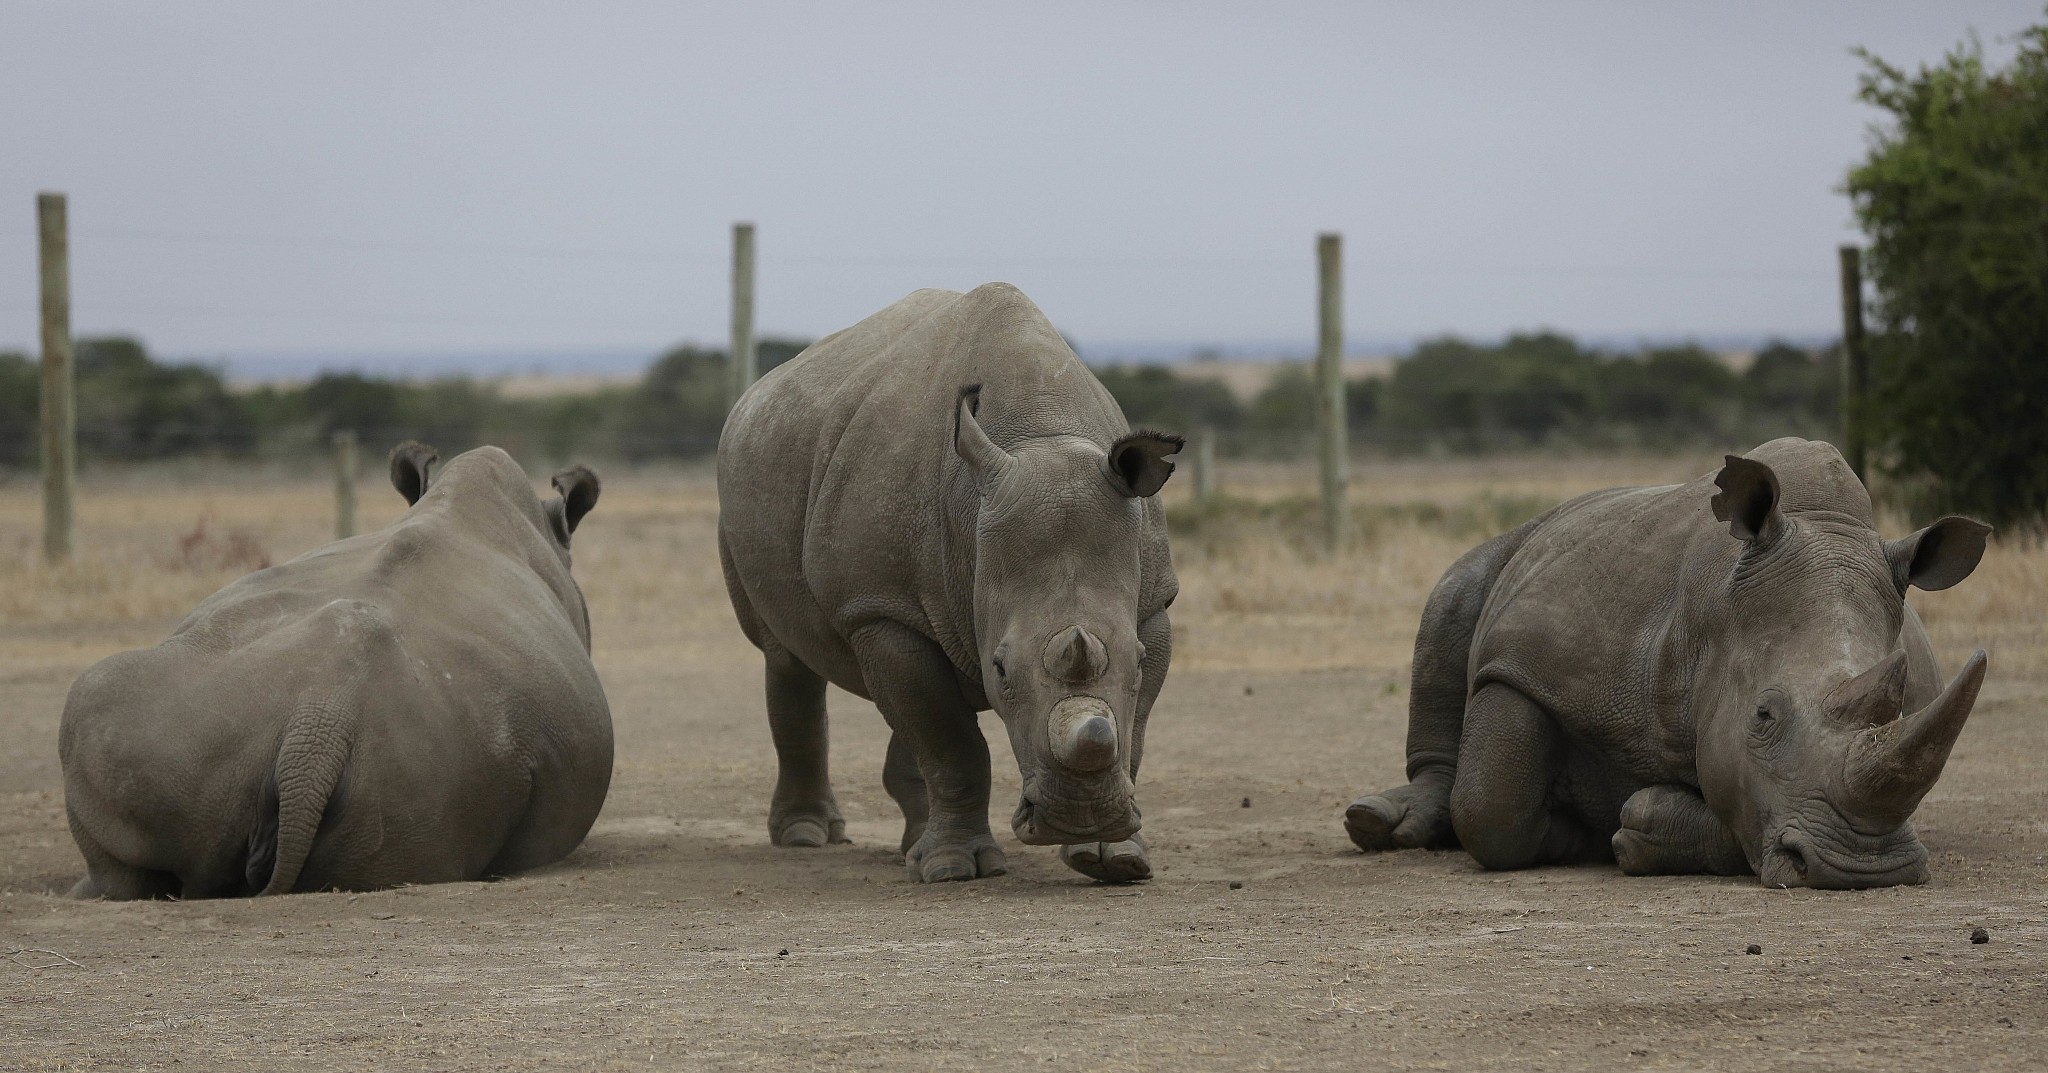 Sudan, the world's last male northern white rhino, dies from 'age-related complications'